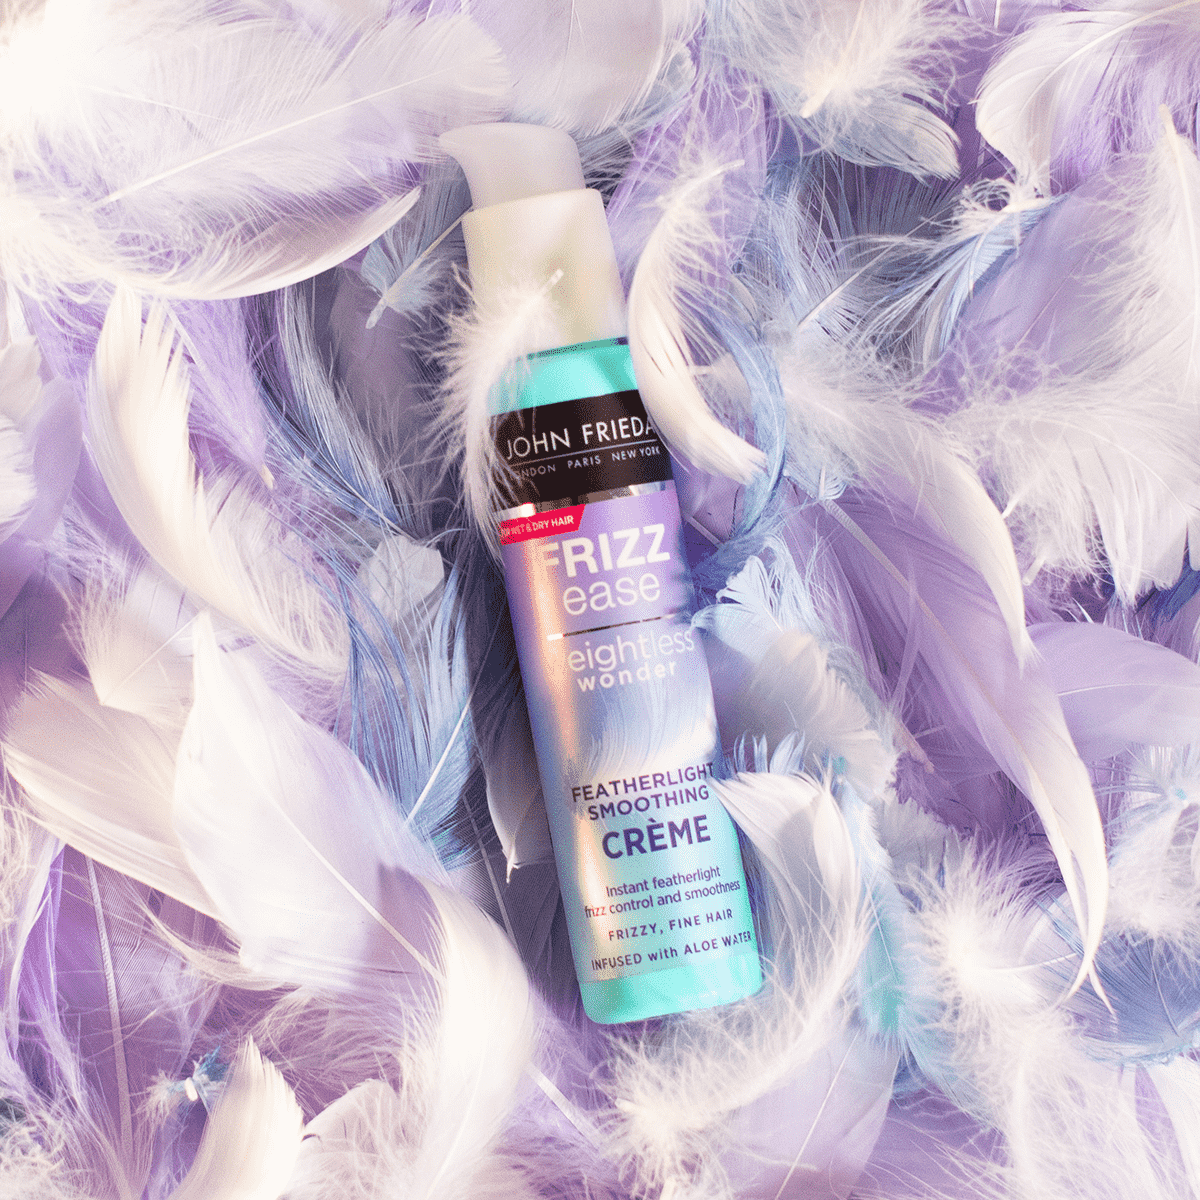 John Frieda product surrounded by feathers